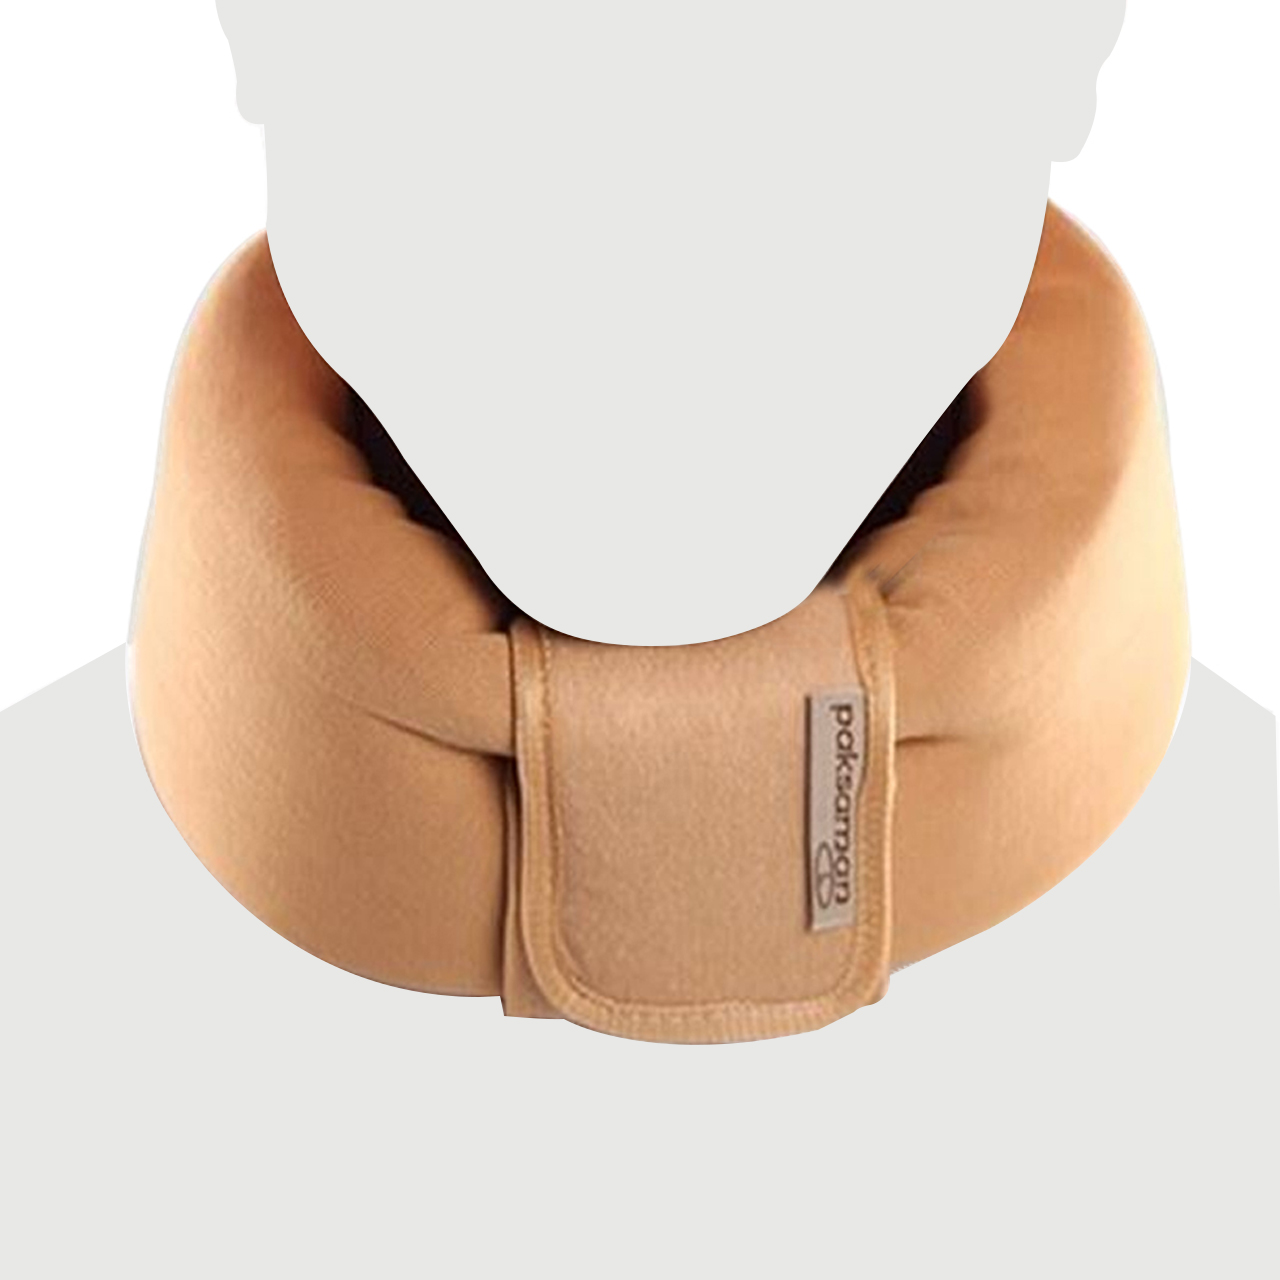 گردن بند طبی پاک سمن مدل Soft Cervical Collar